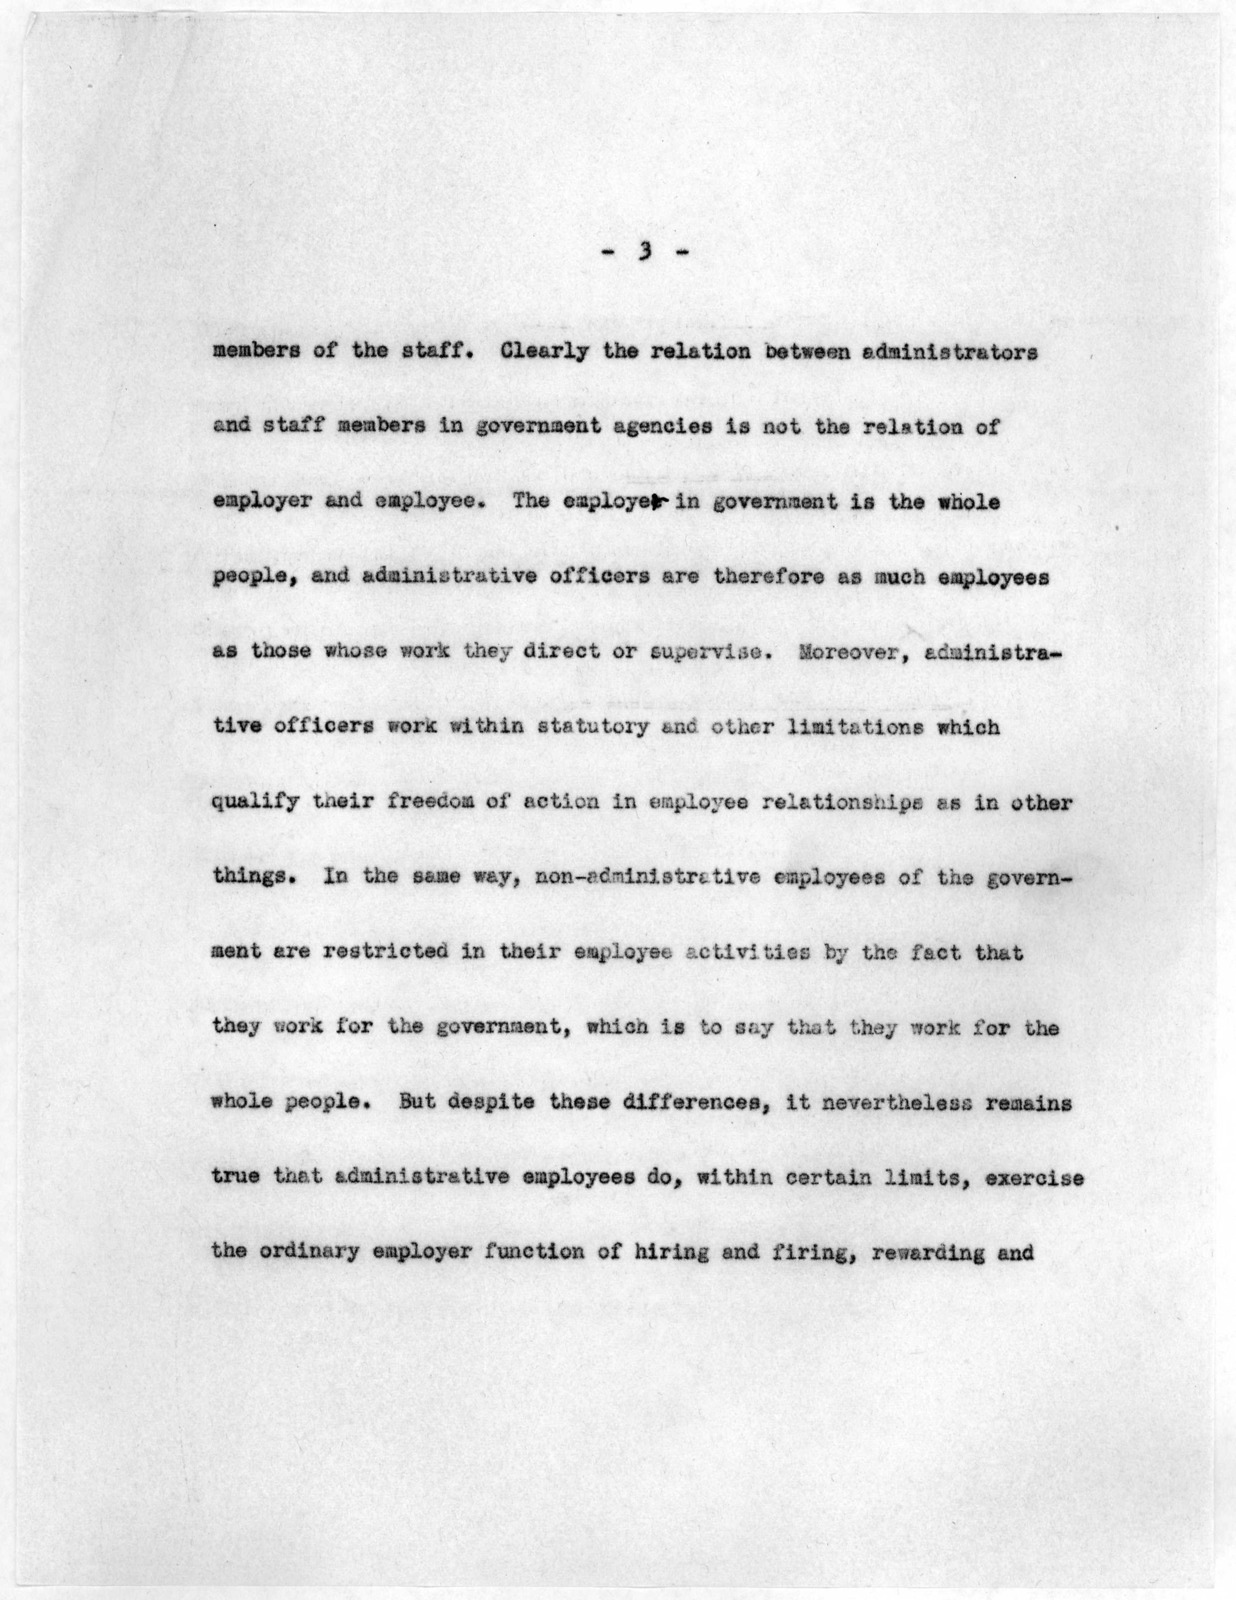 """""""Library of Congress Employee Relations Program, Personnel Administration,"""" by Archibald MacLeish, May 1943"""